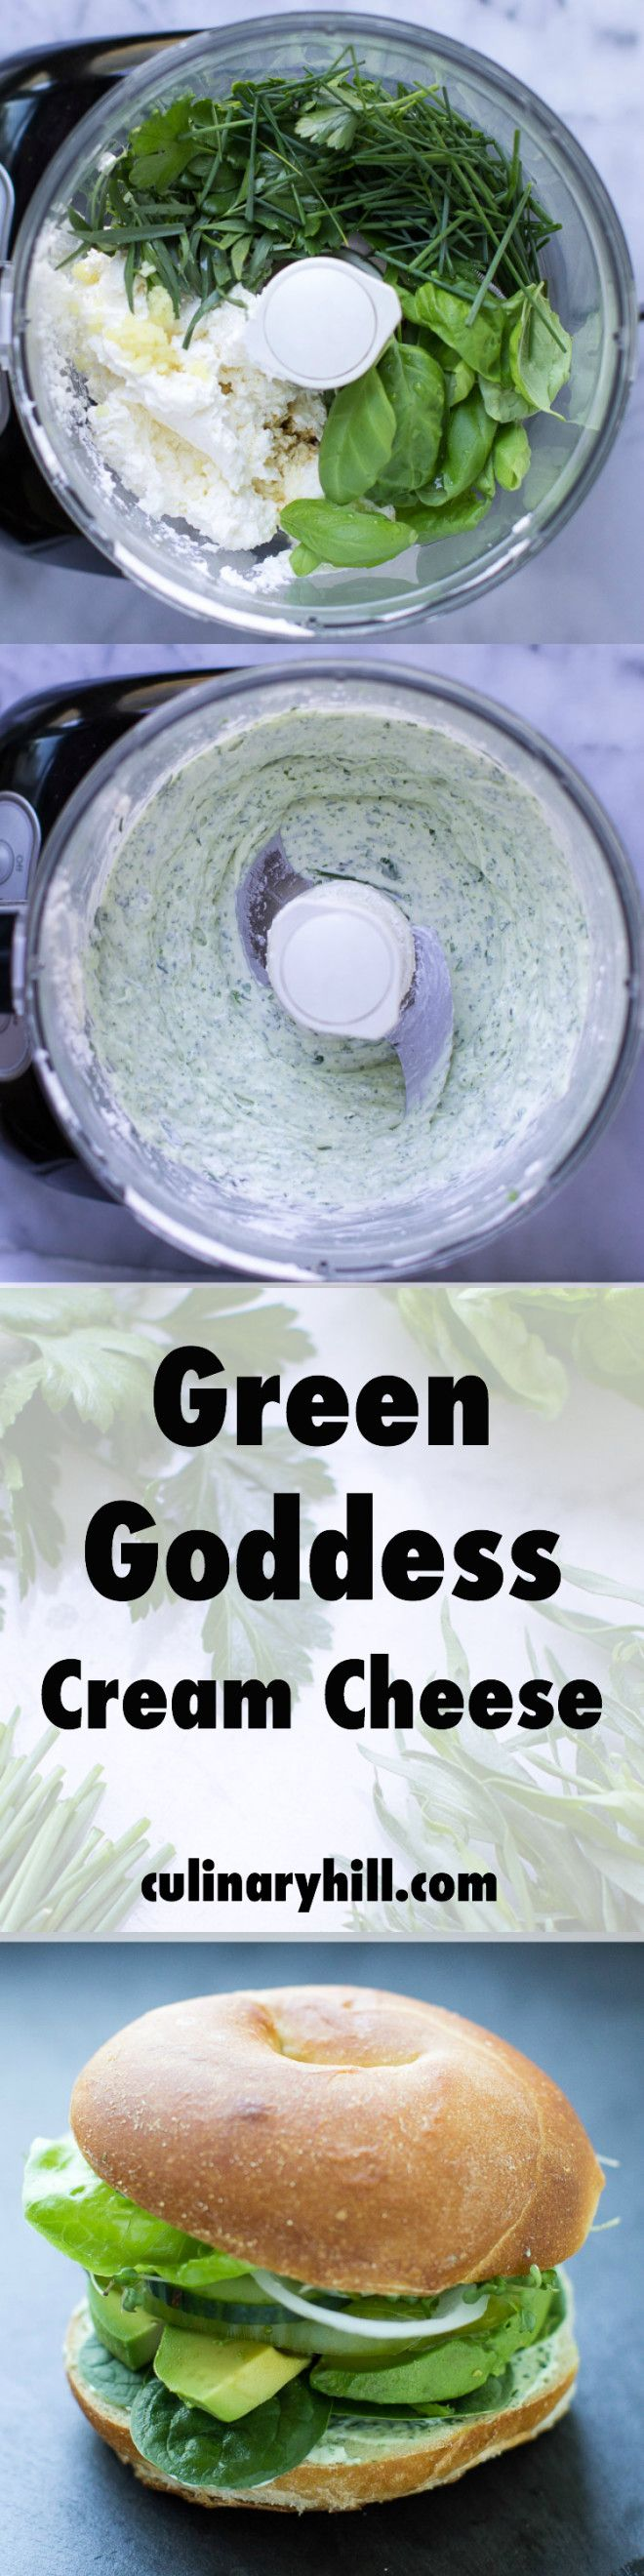 An easy cream cheese blend that uses all your favorite Green Goddess herbs: Basil, tarragon, parsley, and chives! Perfect on your next bagel or sandwich.